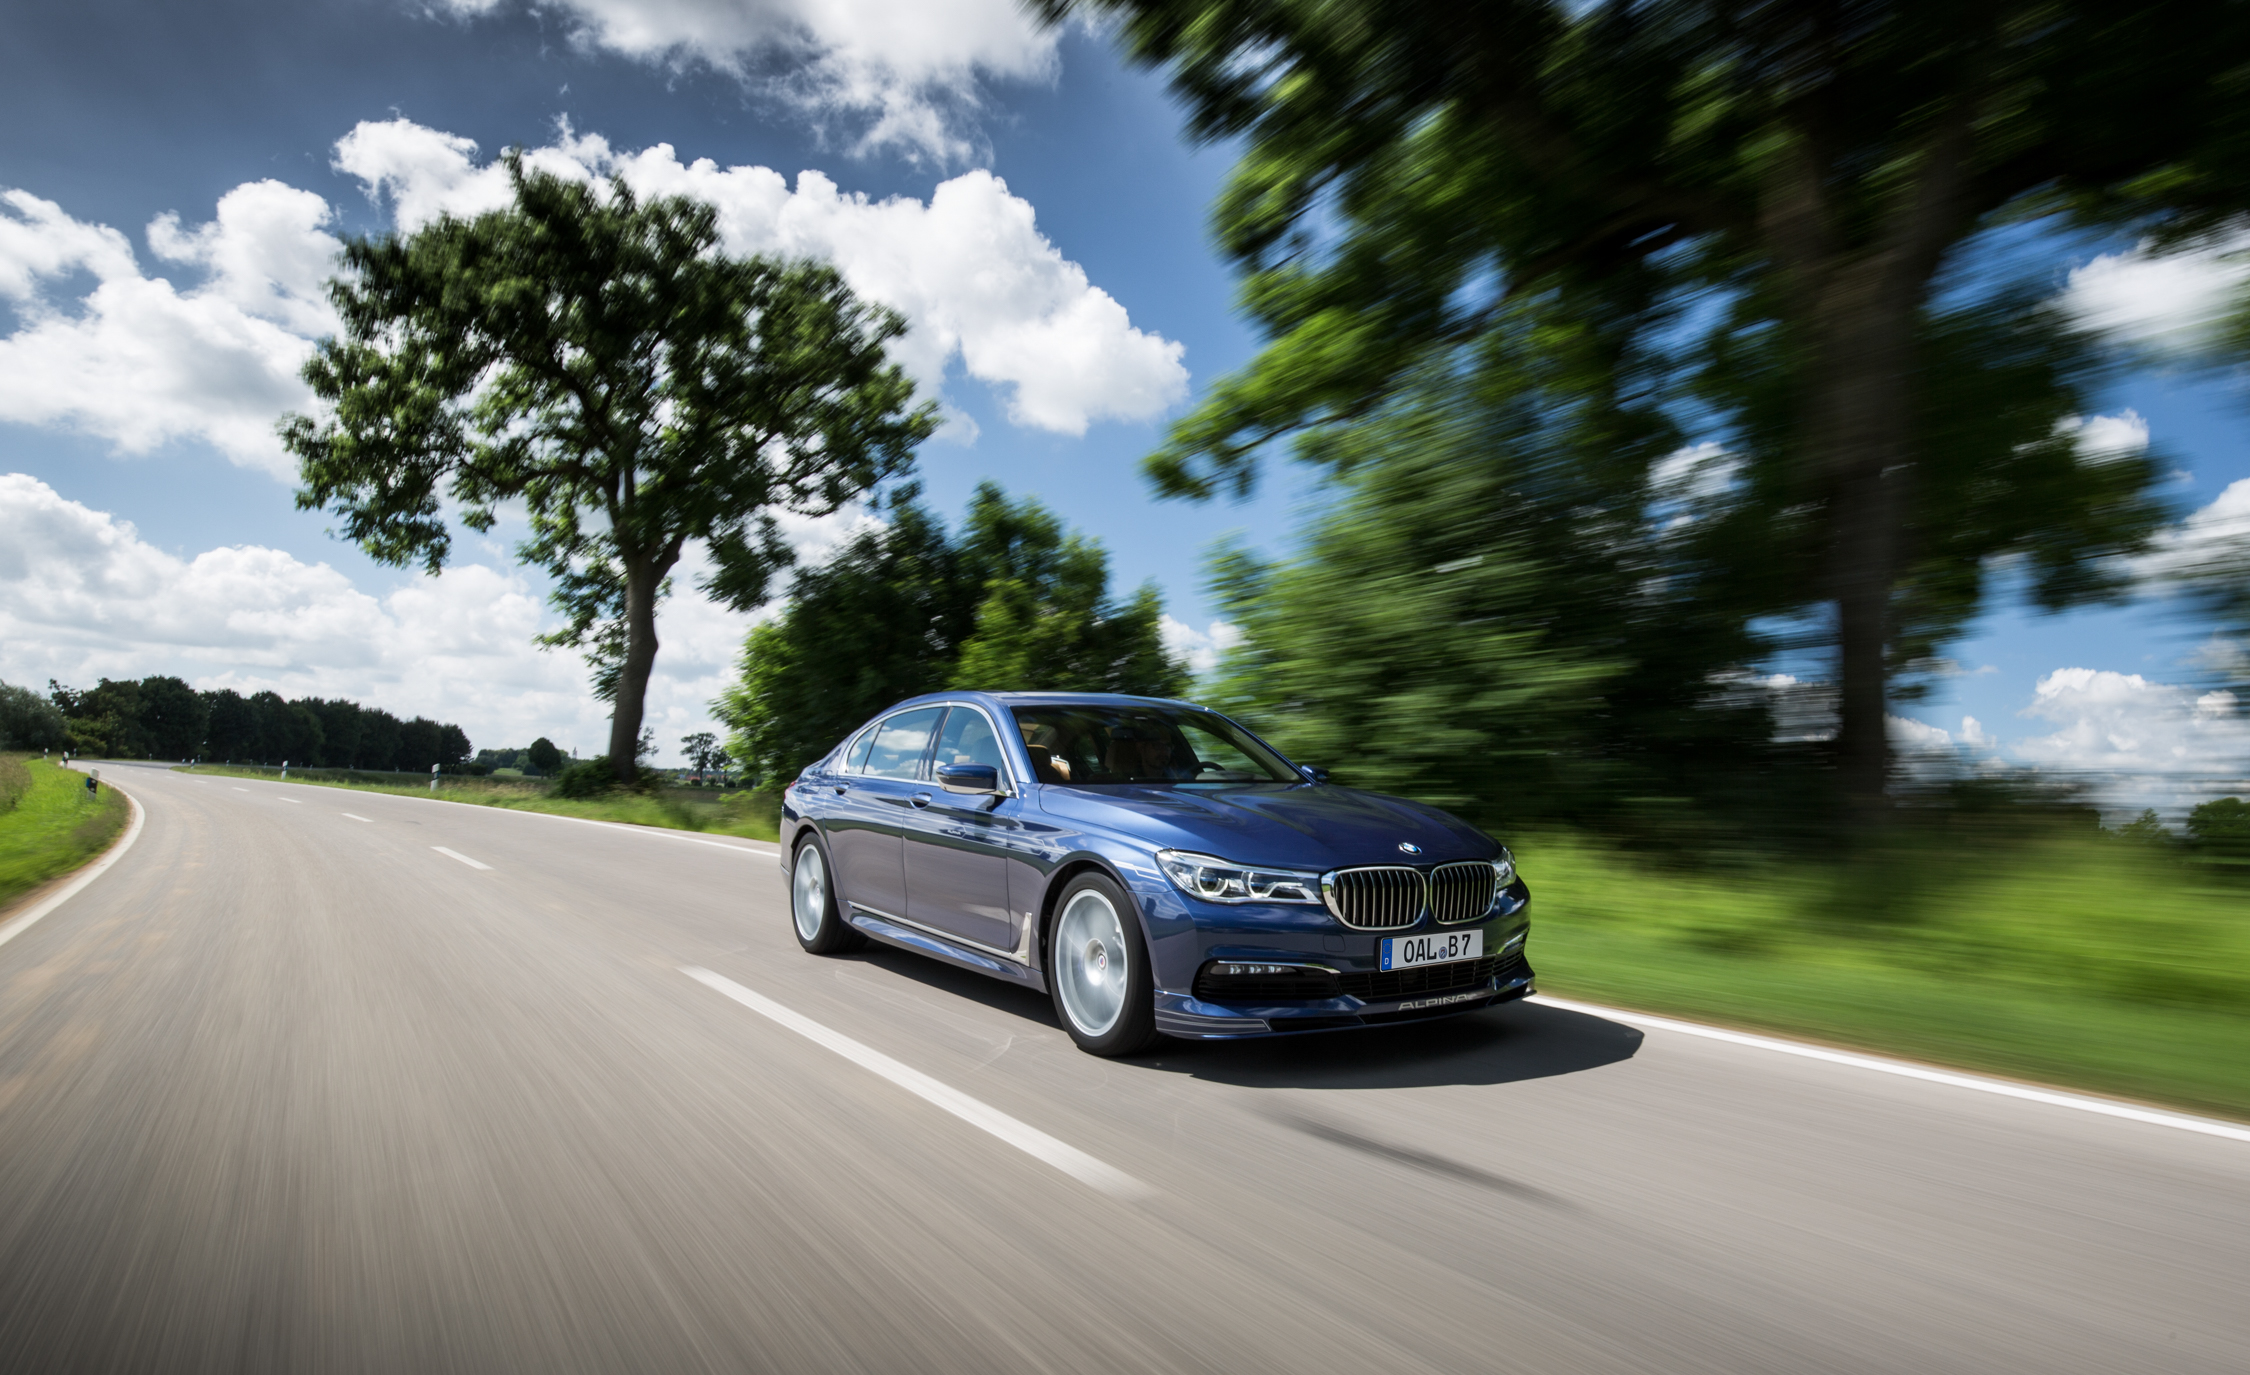 2017 BMW Alpina B7 Blue Metallic Test Drive (Photo 3 of 45)